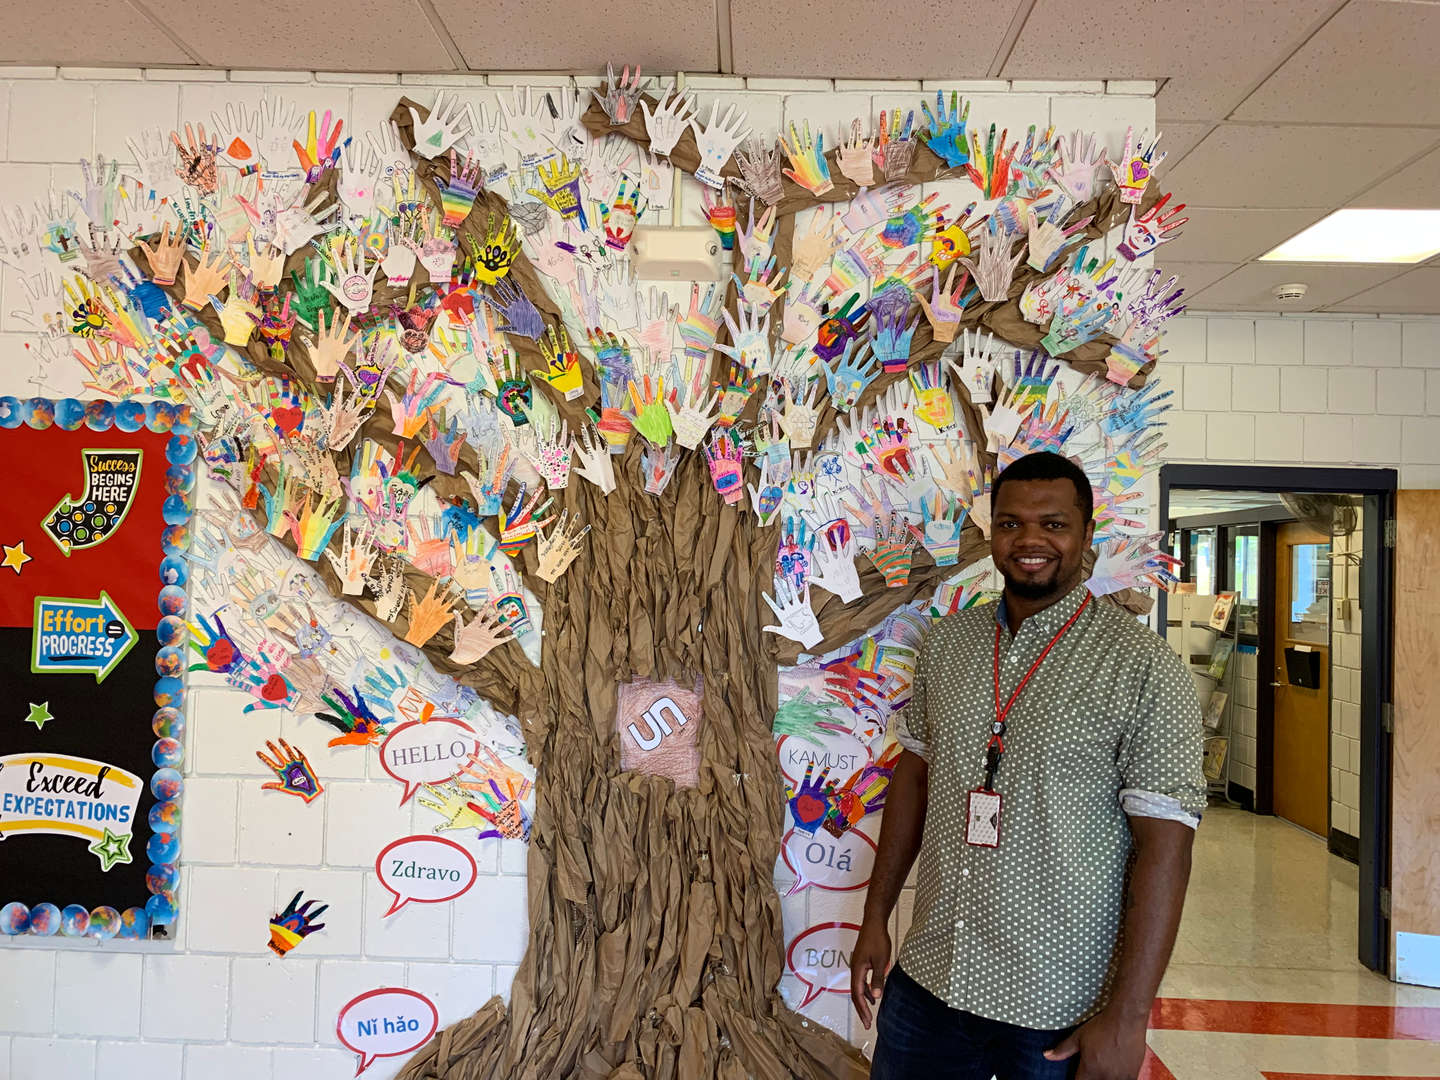 Mr. Hogg at the Upper Nyack Tree of Kindness